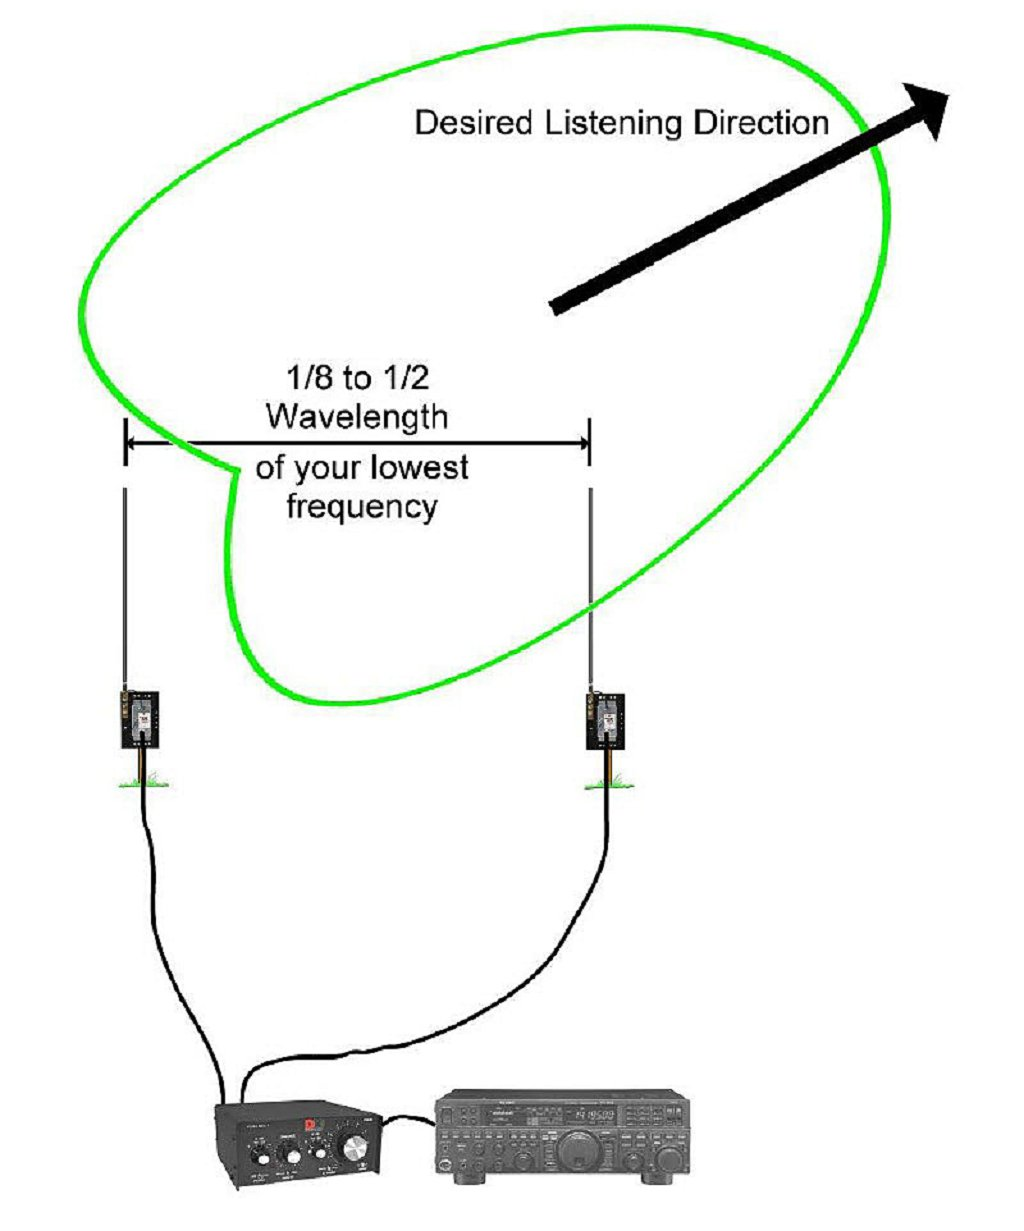 Ncc Wiring Diagram Layout Diagrams Advanced Schematics Fall Antenna Projects A New Low Band Receive System Rh Stationproject Blog 3 Way Switch Light